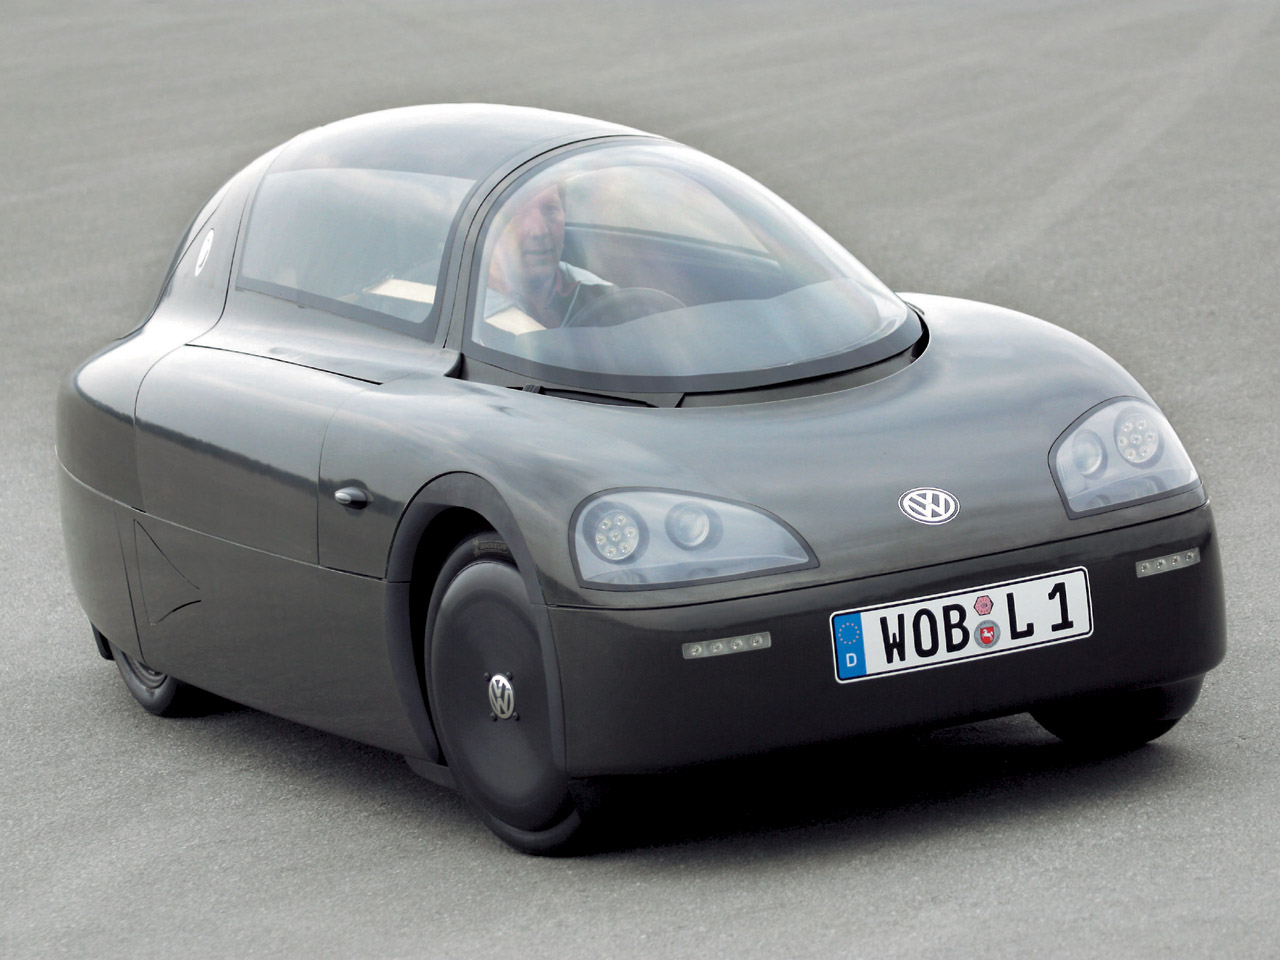 Volkswagen S Single Seater 1 Liter Car Made Using Space